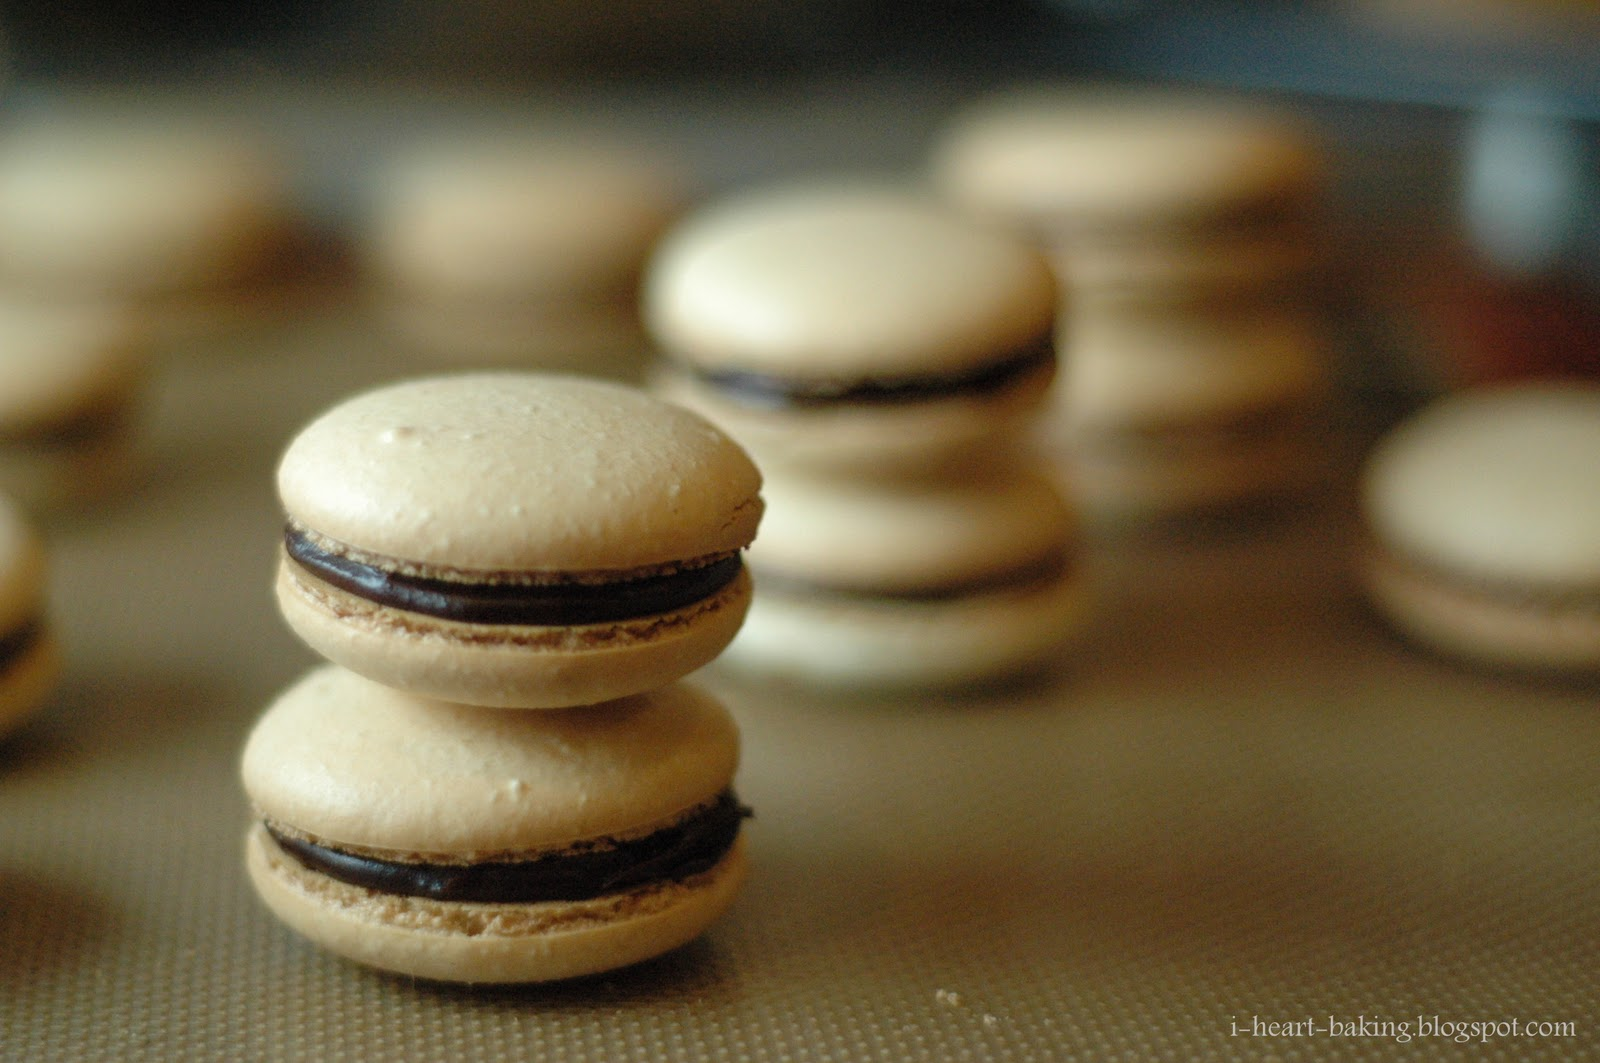 i heart baking!: french macarons